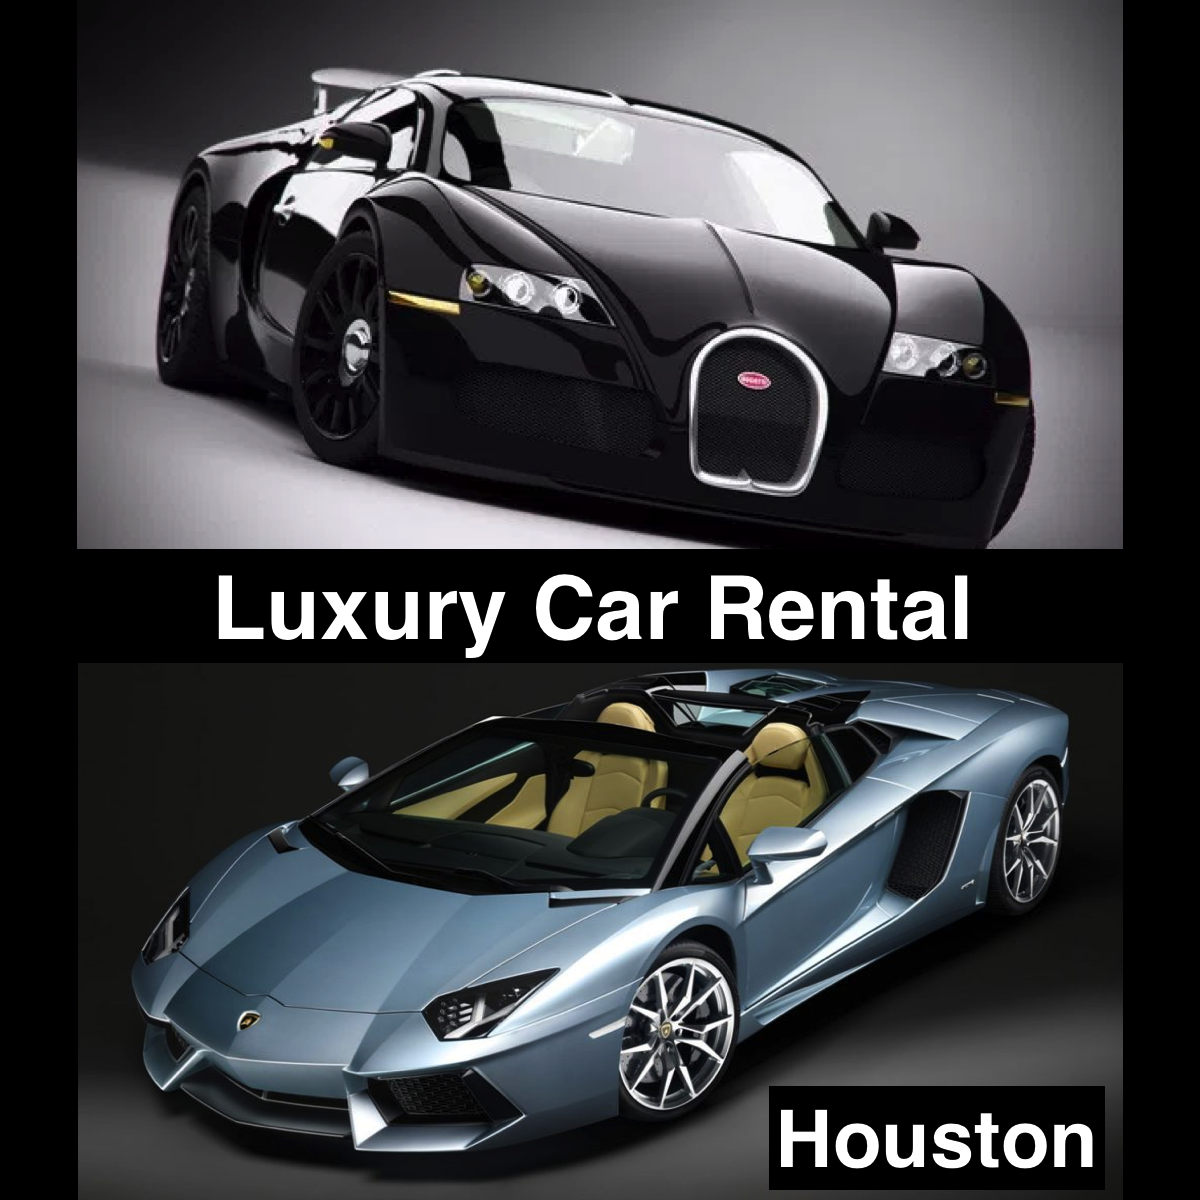 Luxury Car Rental Houston >> Luxury Car Rental Houston Exotic Cars All Best Top 10 Reviews